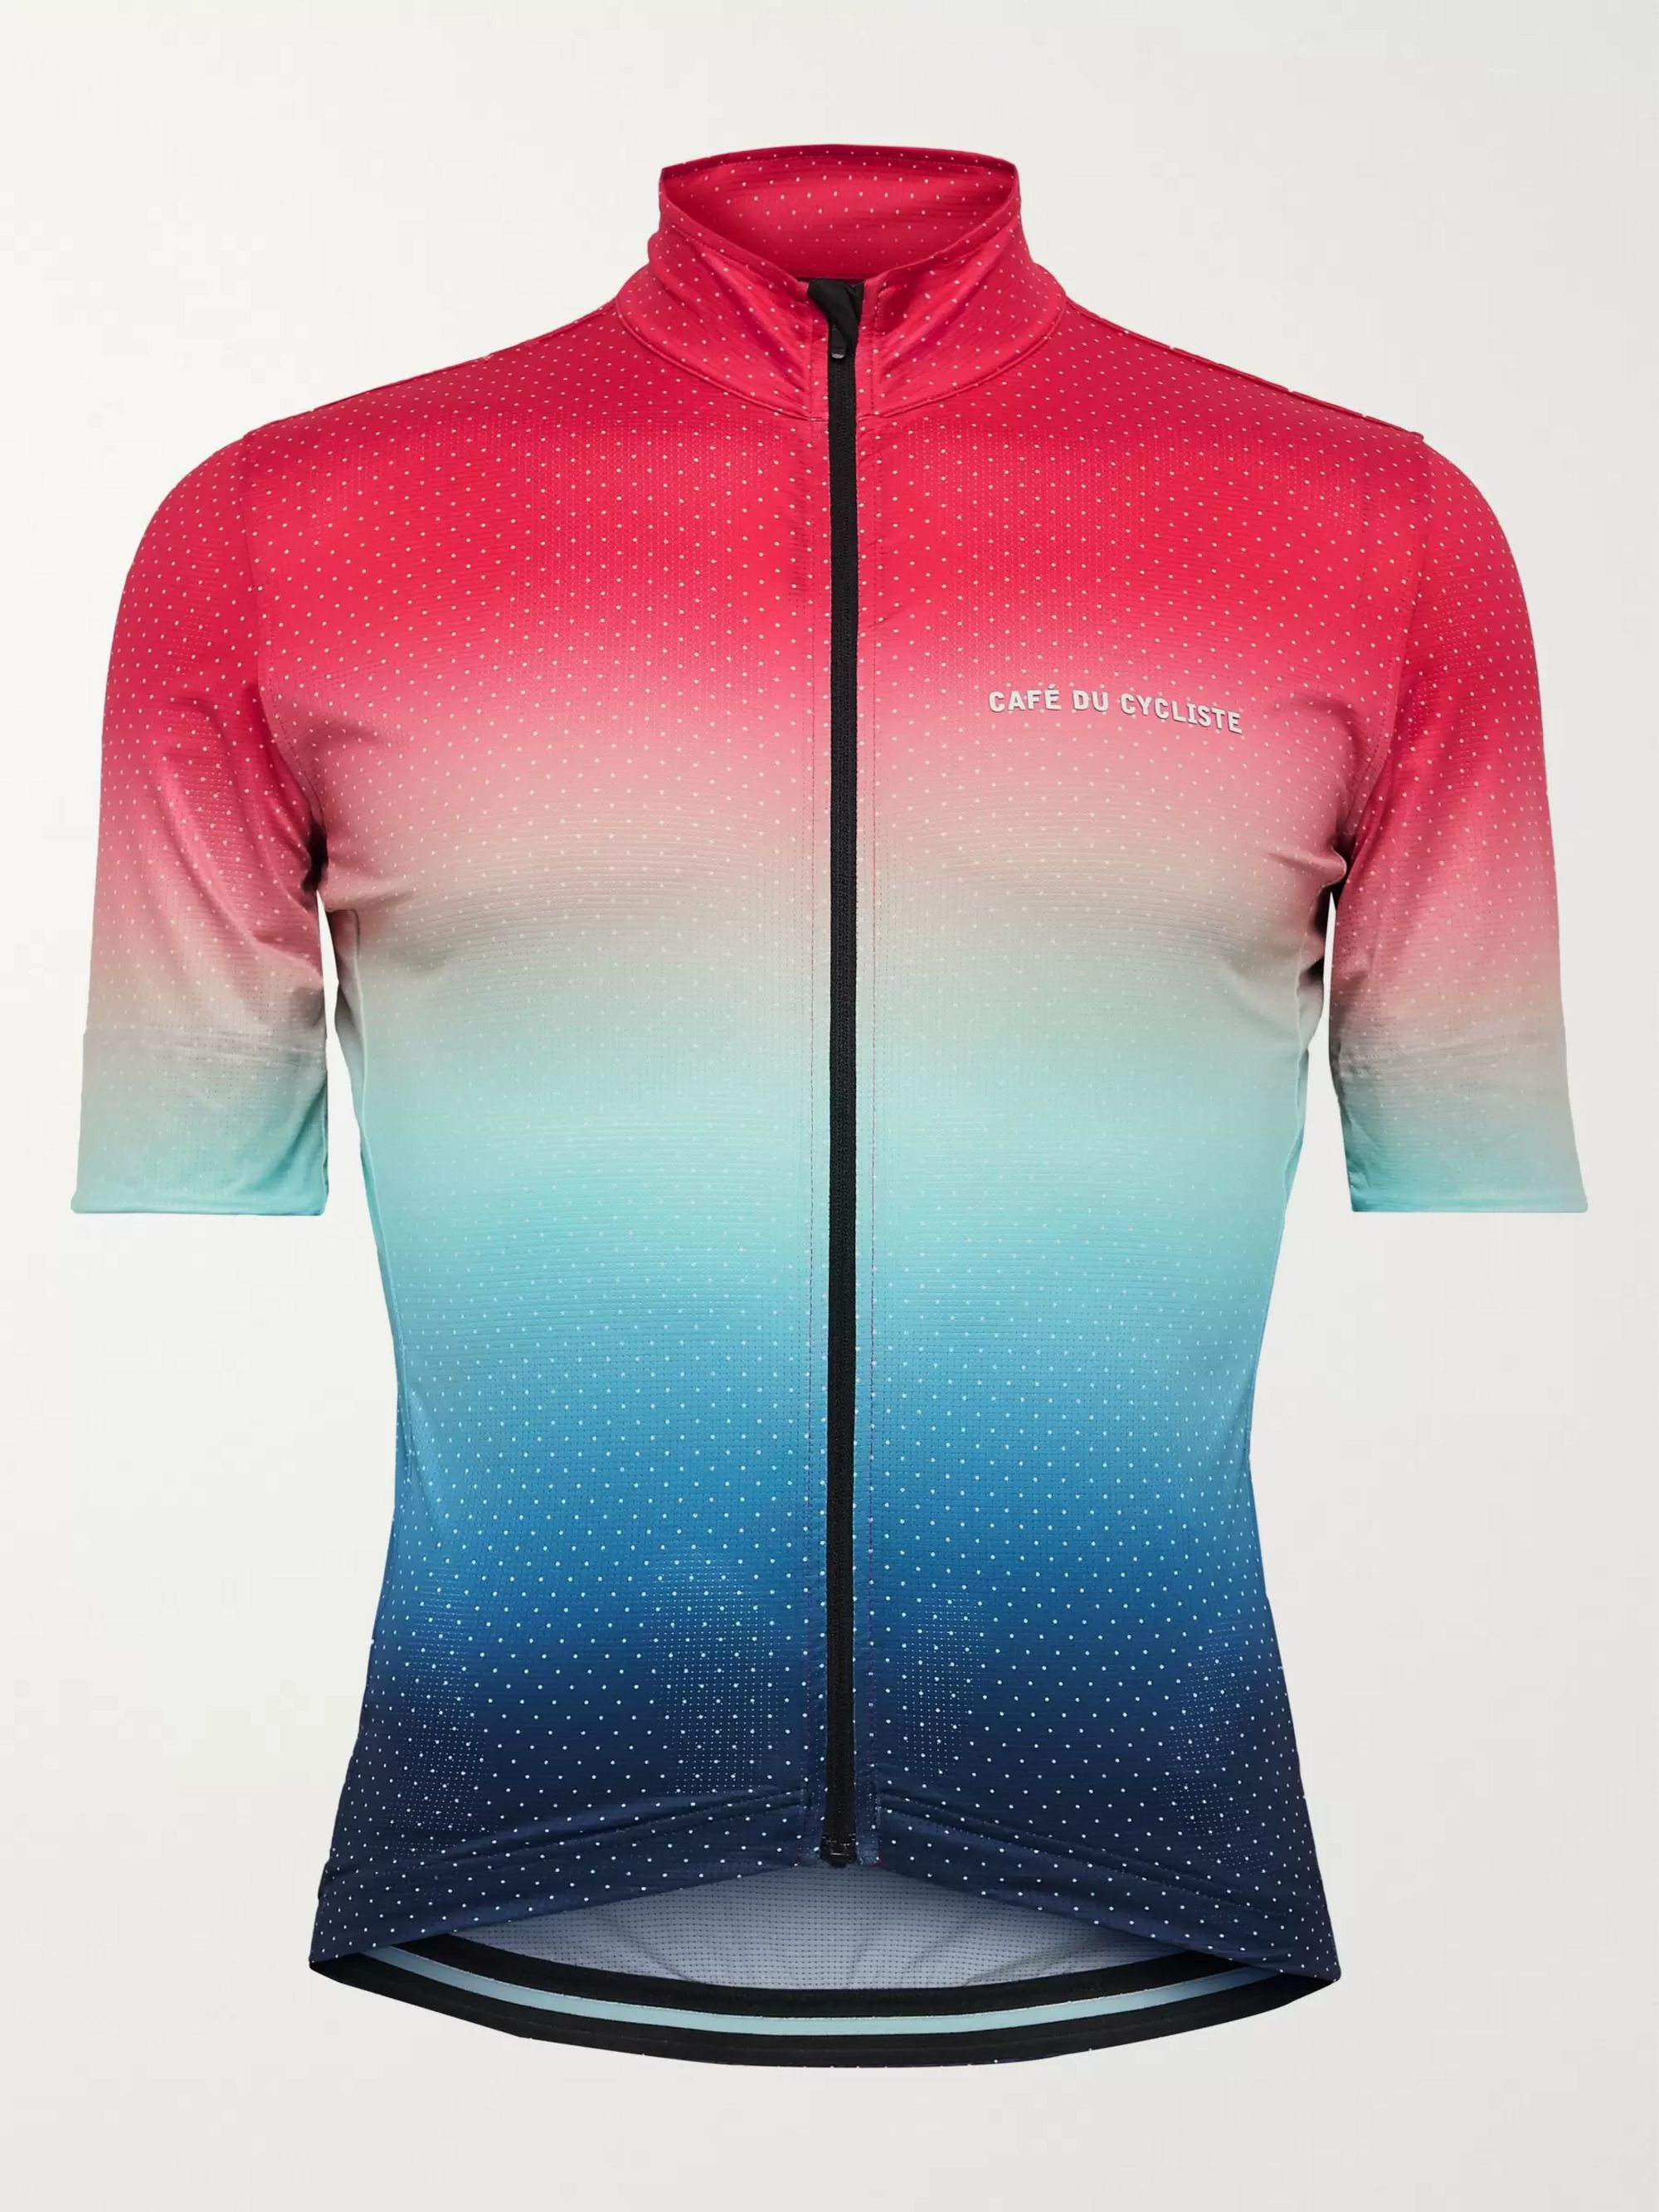 Cafe du Cycliste Fleurette Printed Cycling Jersey